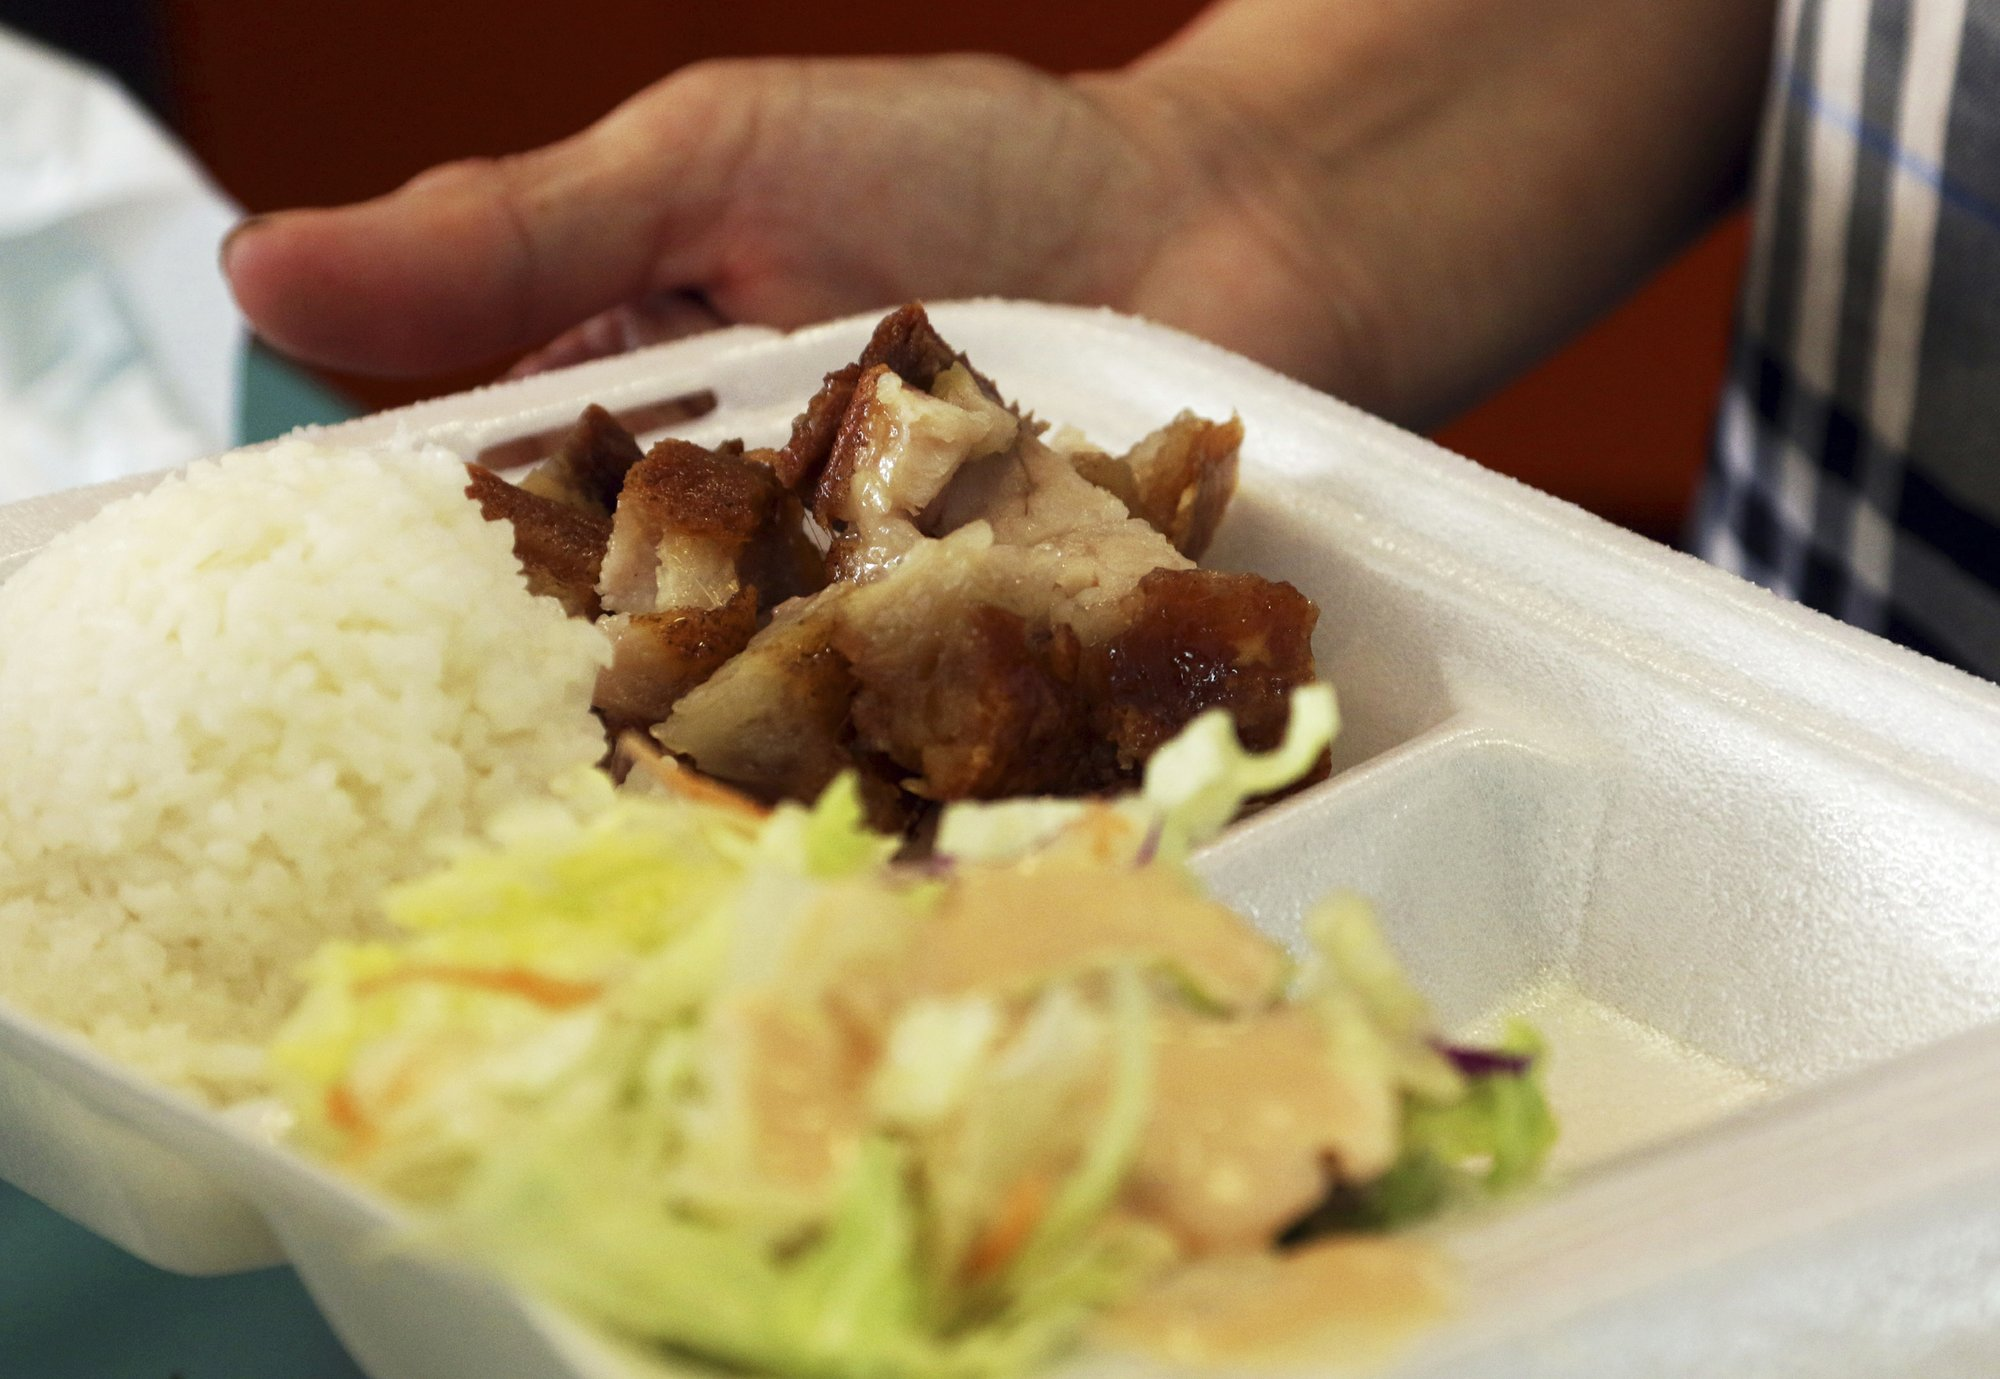 In this Thursday, March 14, 2019 photo, Belinda Lau, manager of the Wiki Wiki Drive Inn takeout restaurant in Honolulu, holds a polystyrene foam box containing an order of roast pork, rice and salad. Hawaii would be the first state in the nation to ban most plastics used at restaurants, including polystyrene foam containers, if legislation lawmakers are considering is enacted. The aim is to cut down on waste that pollutes the ocean. (AP Photo/Audrey McAvoy)